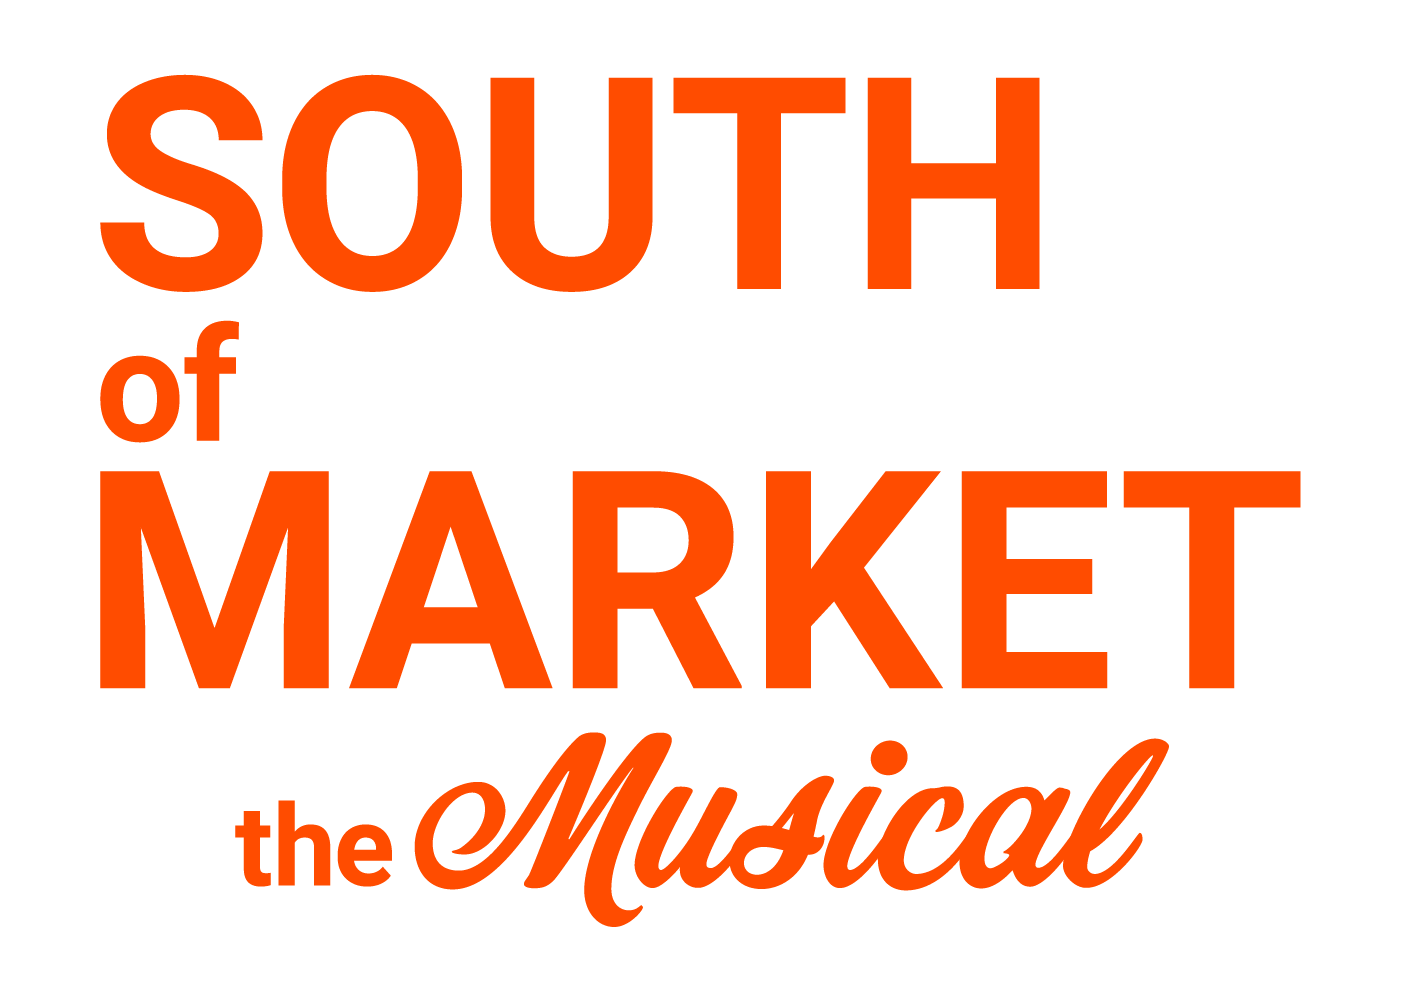 South of Market: The Musical